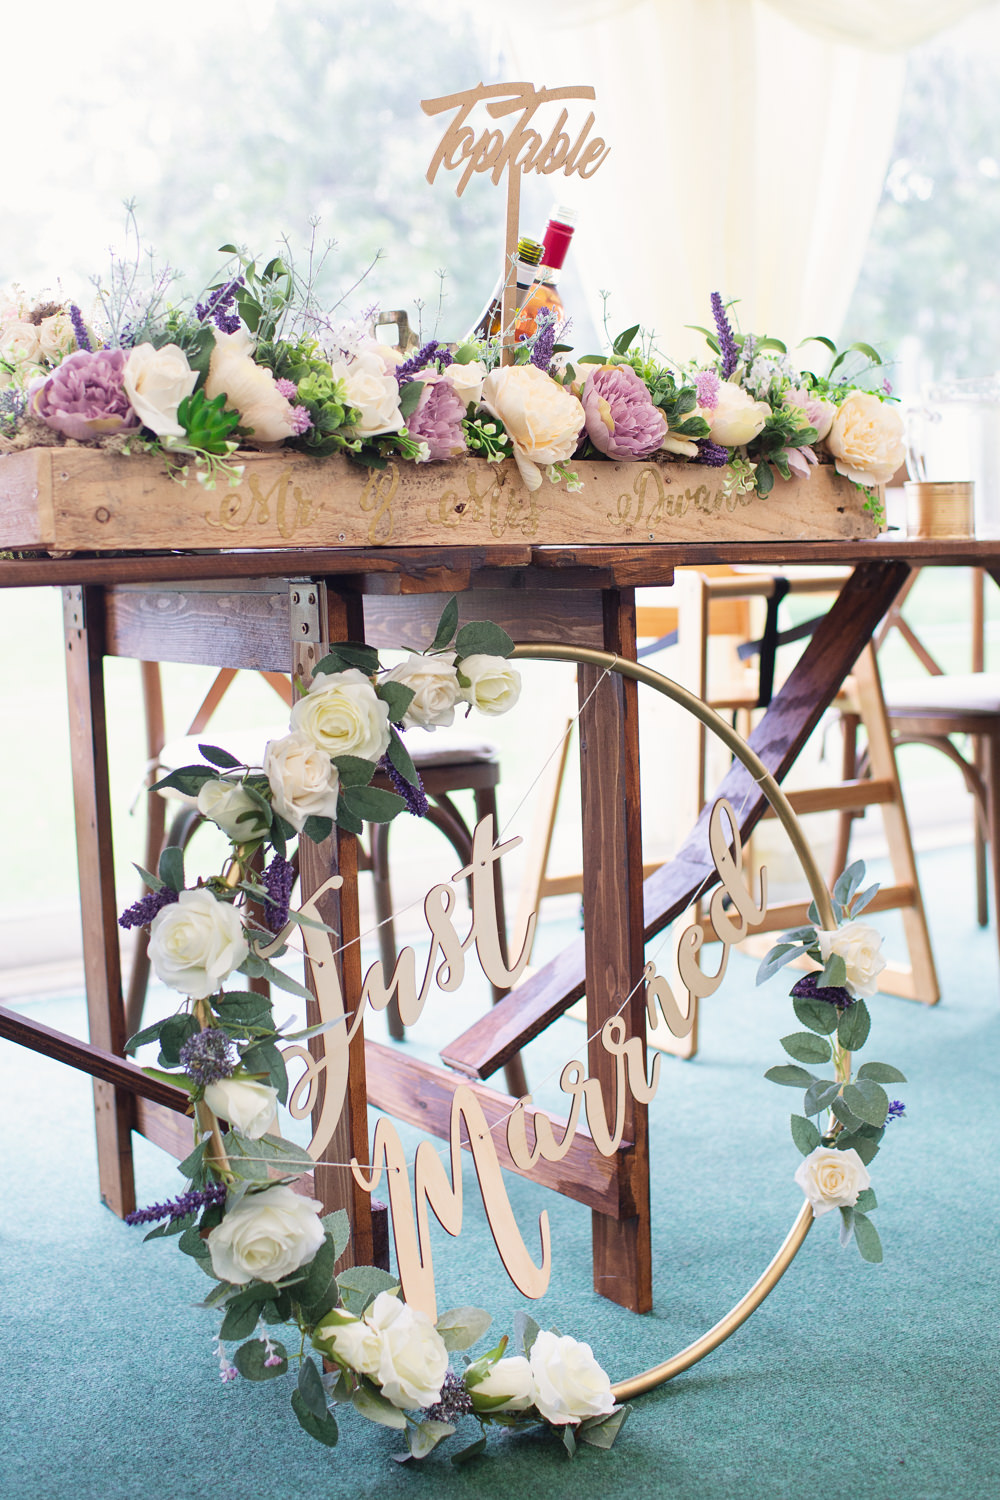 Laser Cut Hoop Sign Sings Signage Top Table Flowers Railway Station Wedding Cotton Candy Weddings